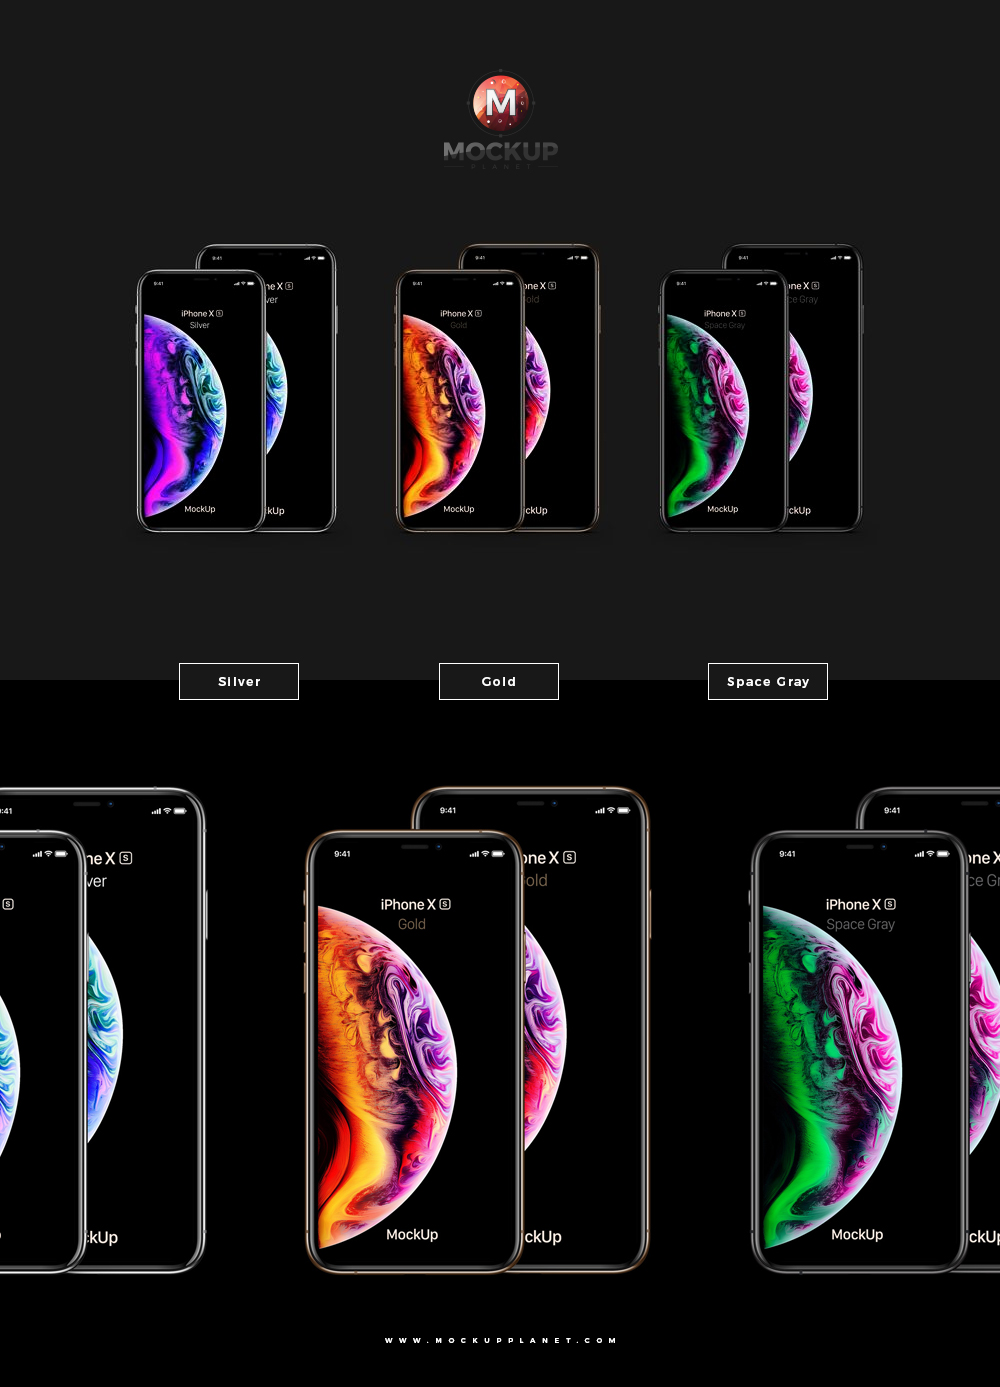 Free-Silver-Gold-Space-Gray-iPhone-Xs-Max-and-iPhone-Xs-Mockup-PSD